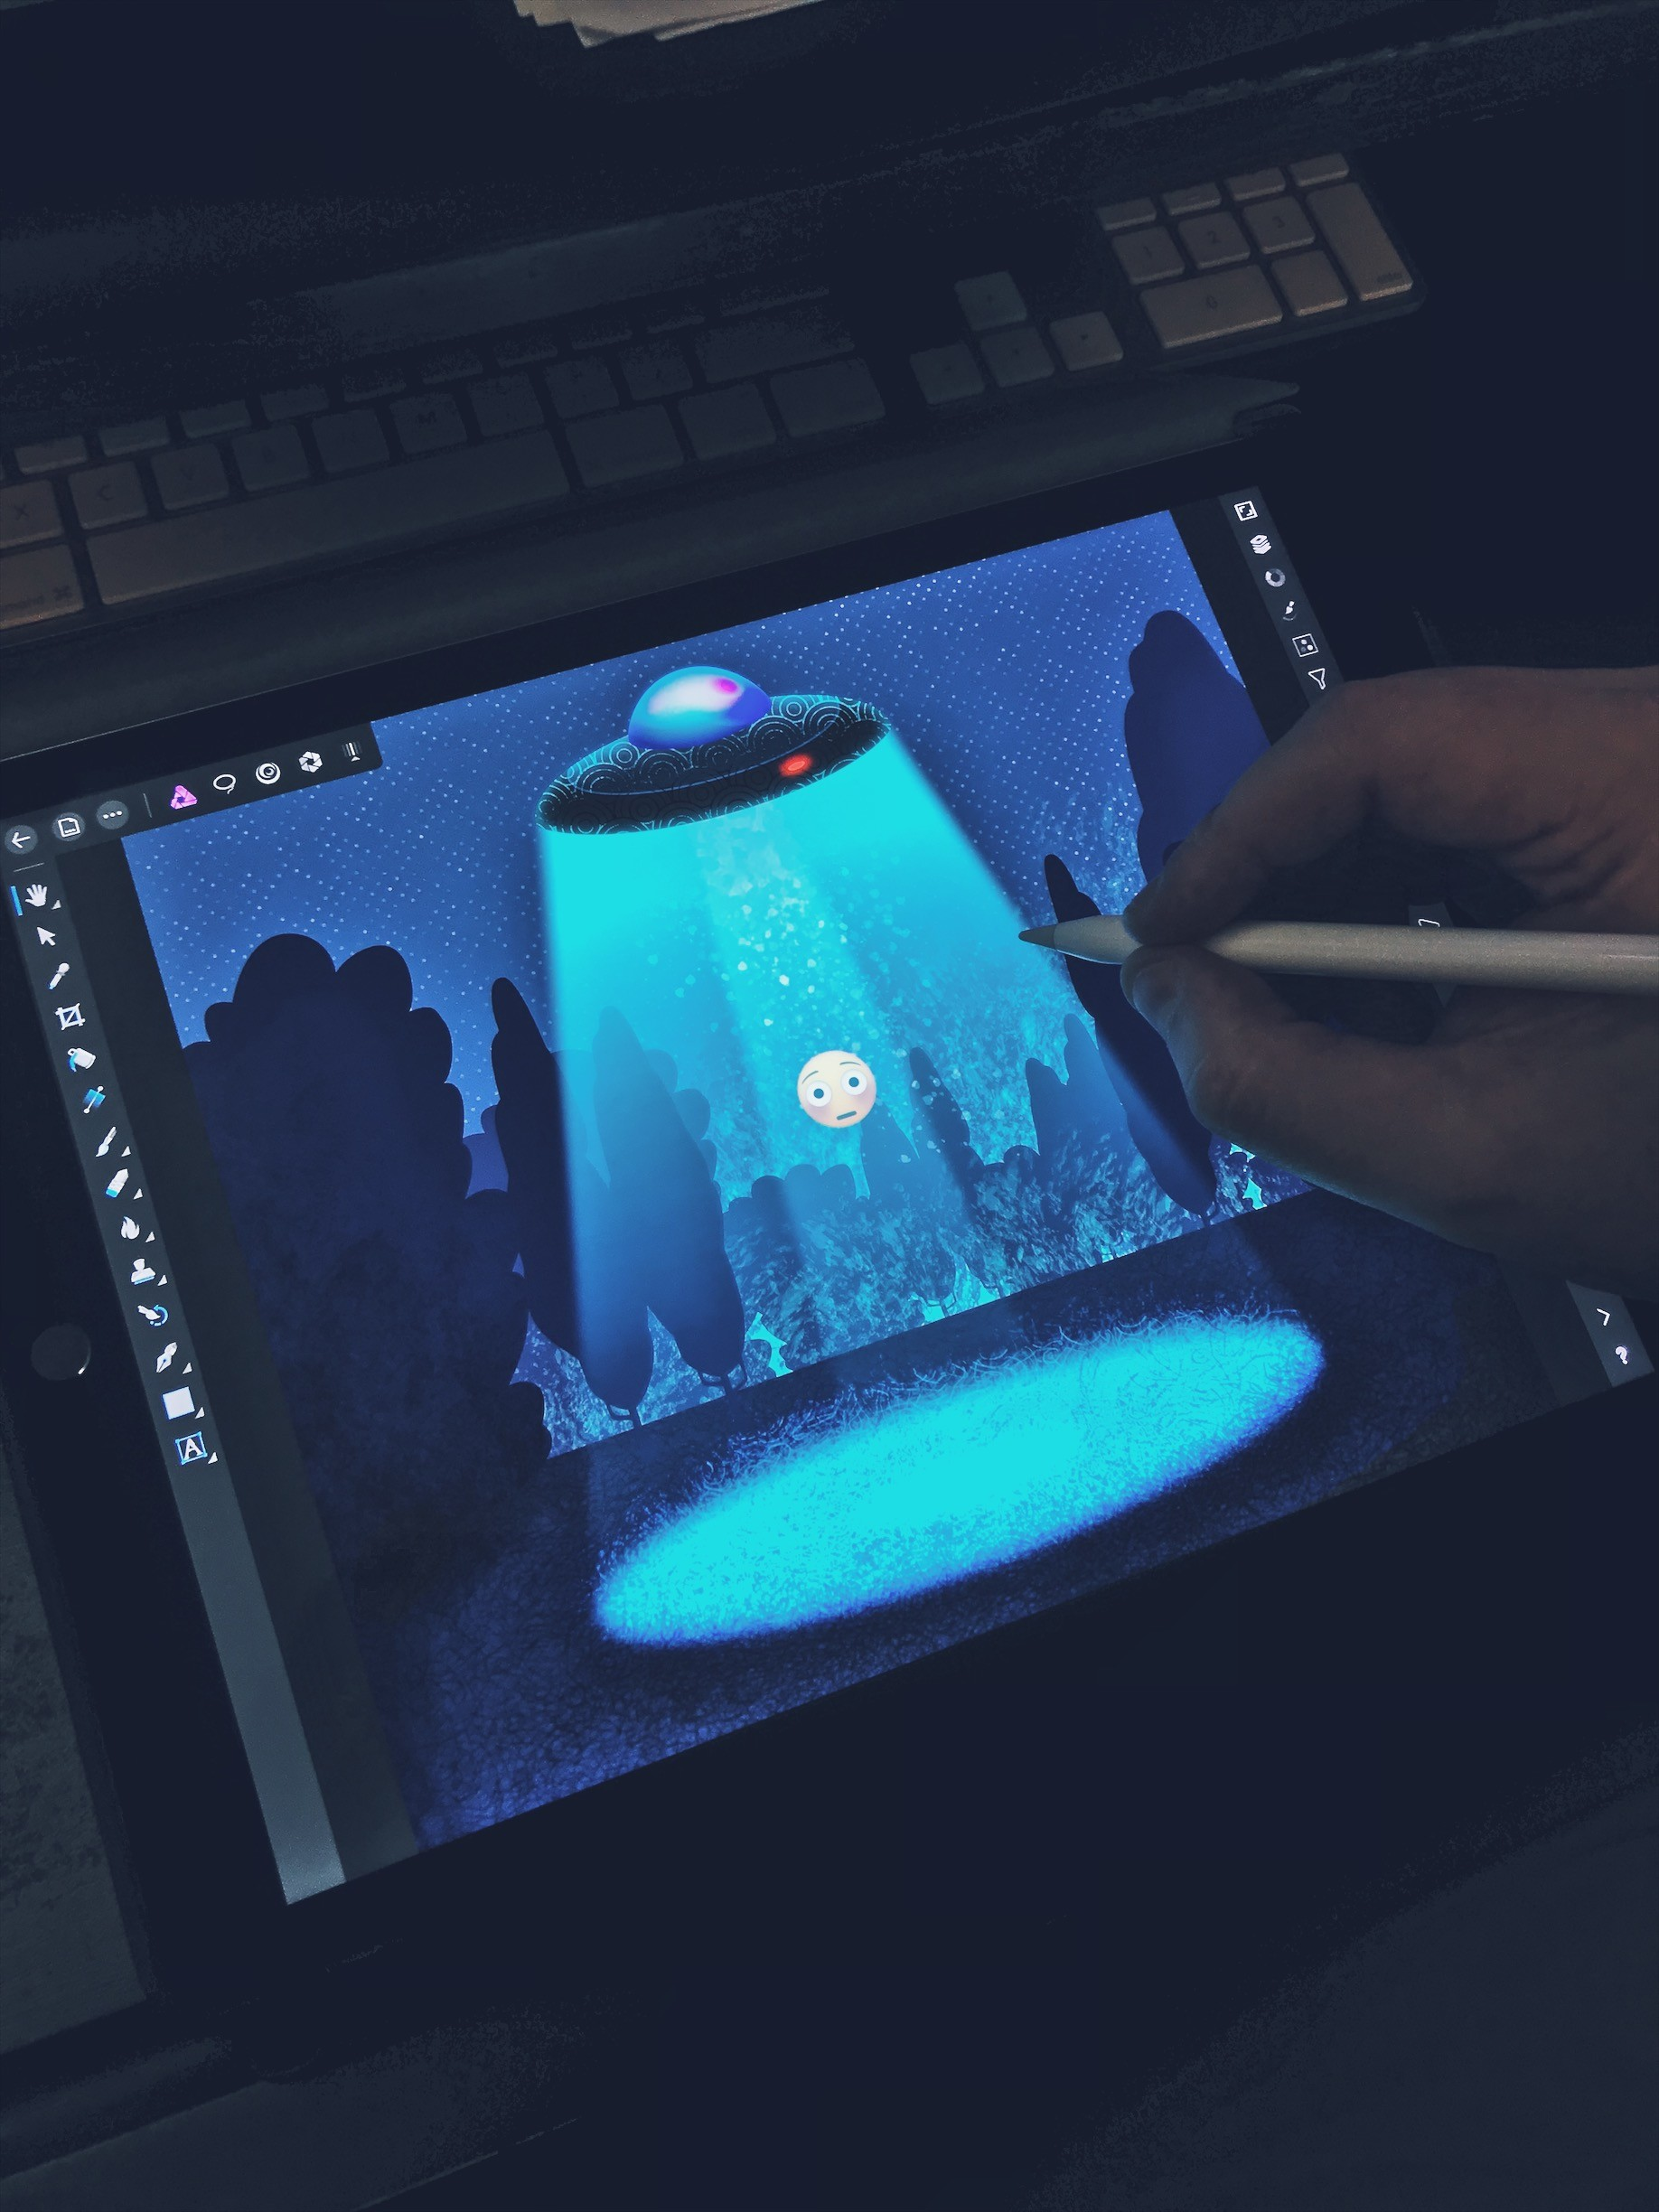 iPad Pro and Affinity Photo